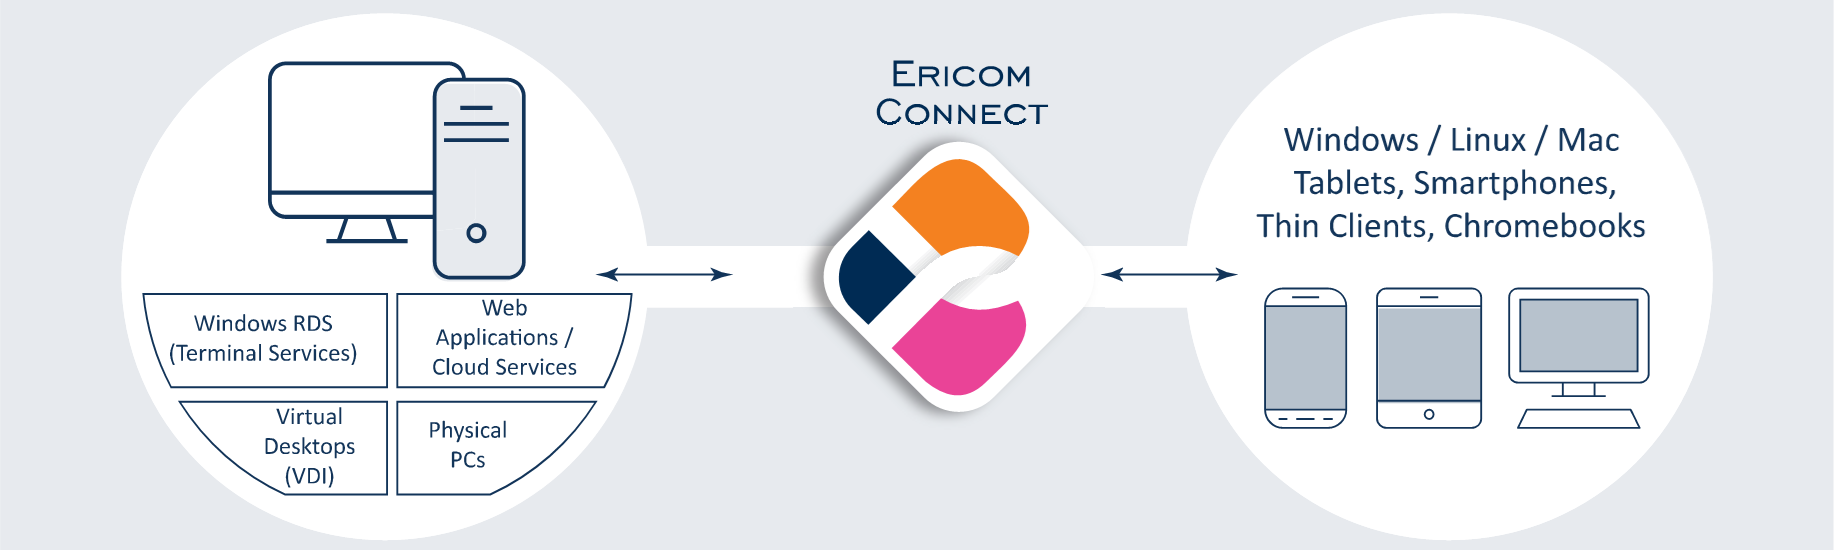 Secure Remote Access Solutions by Ericom